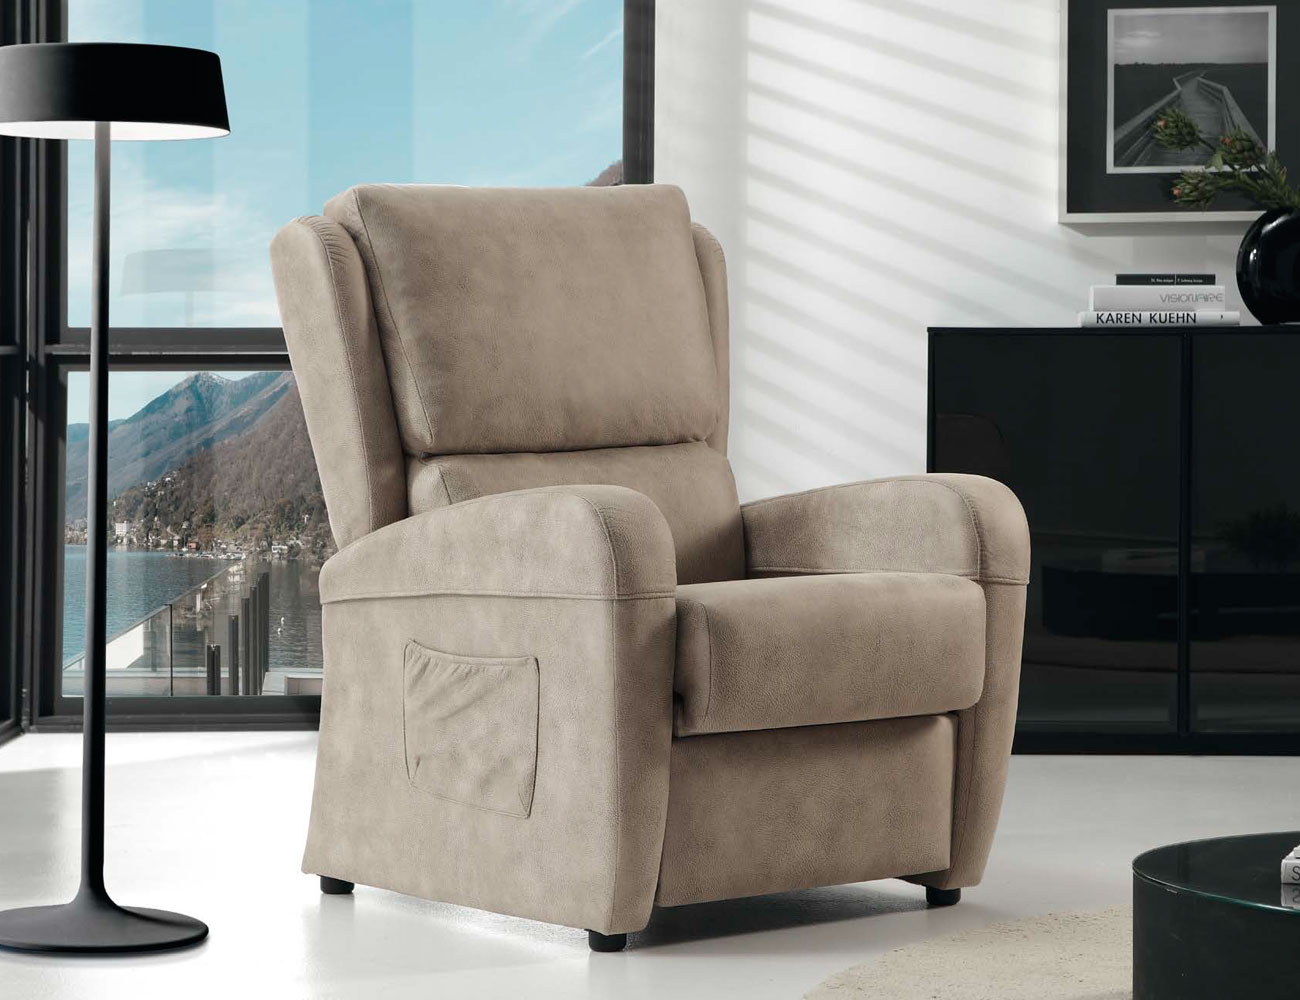 Sillon relax manual jana9